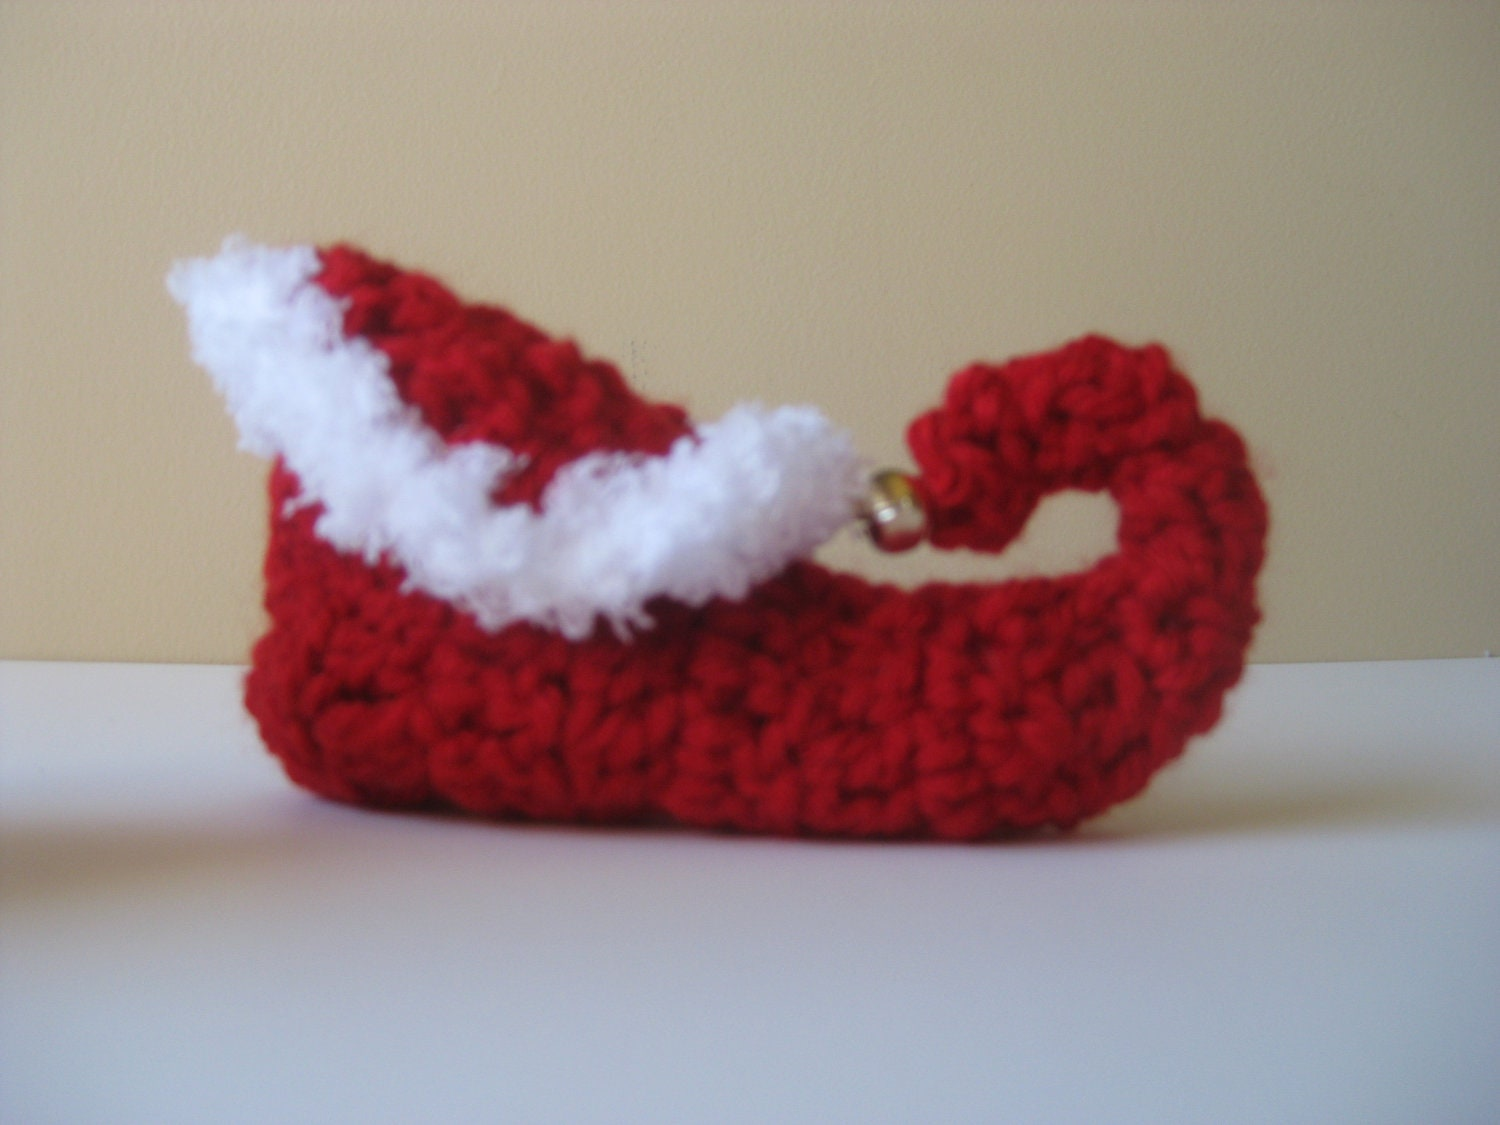 Knitting Pattern For Elf Slippers : Crochet baby booties Christmas Elf shoes slippers socks